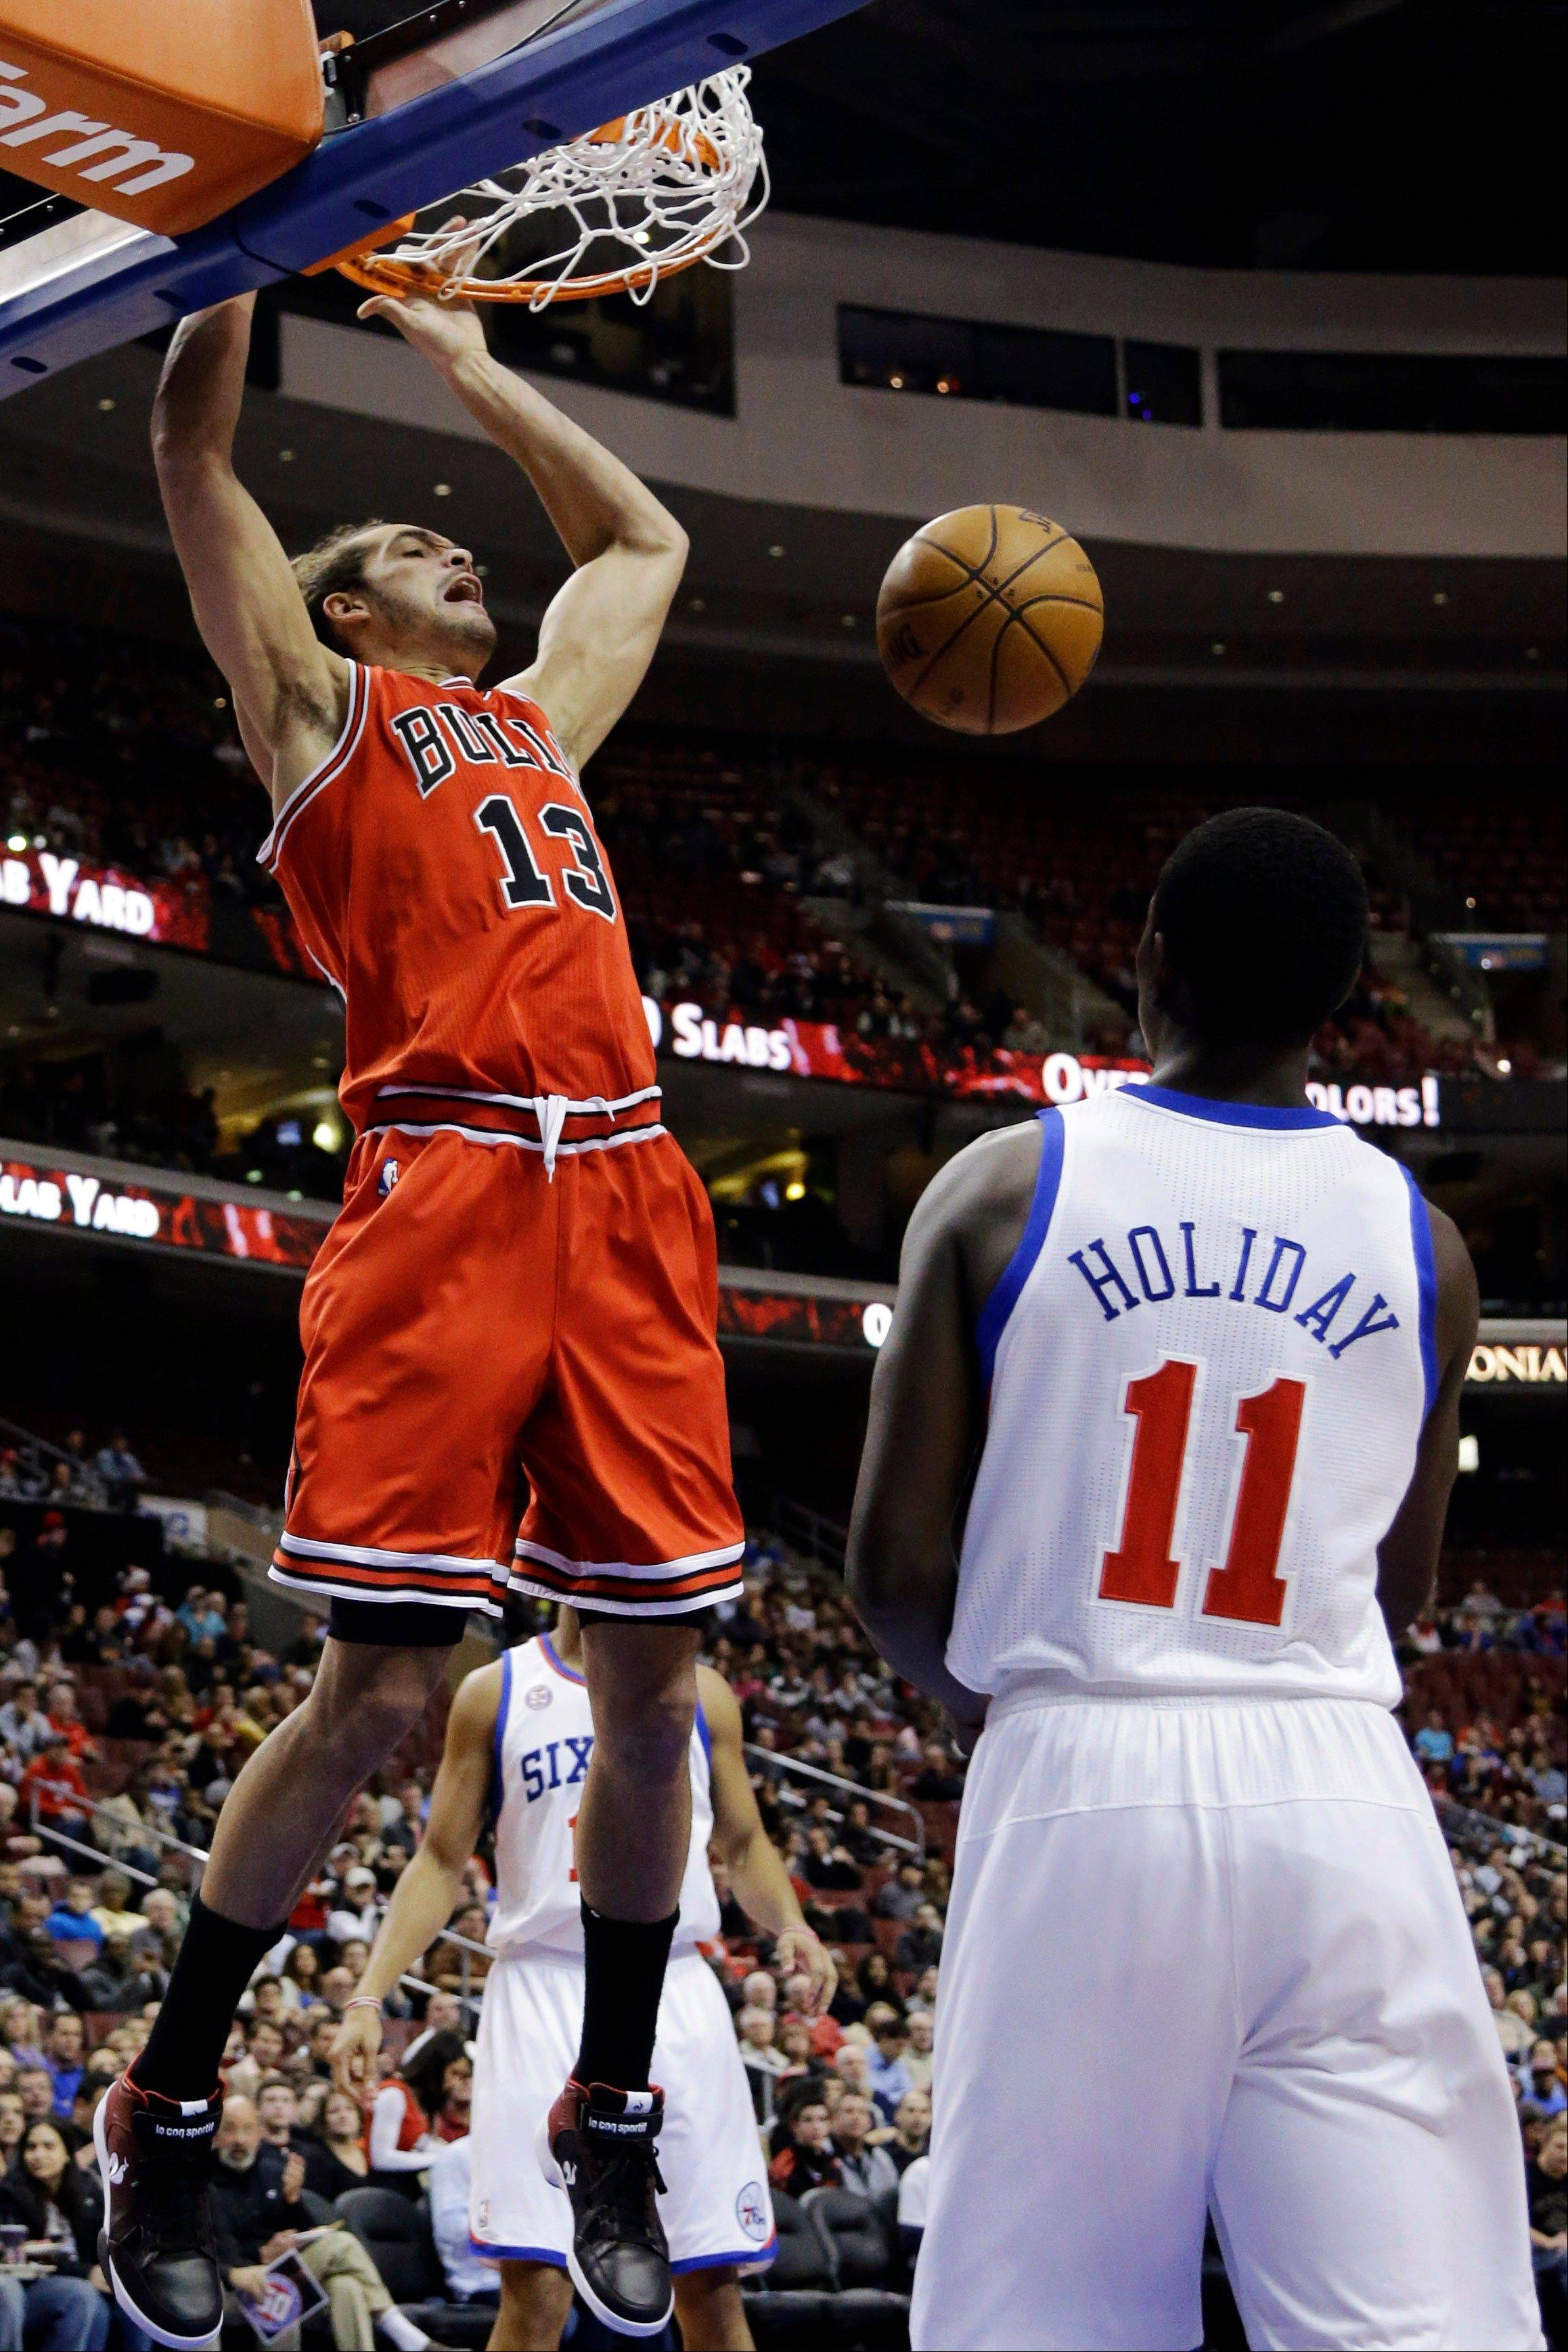 Chicago Bulls' Joakim Noah (13) dunks the ball as Philadelphia 76ers' Jrue Holiday (11) watches during the first half of an NBA basketball game, Wednesday, Dec. 12, 2012, in Philadelphia. (AP Photo/Matt Slocum)